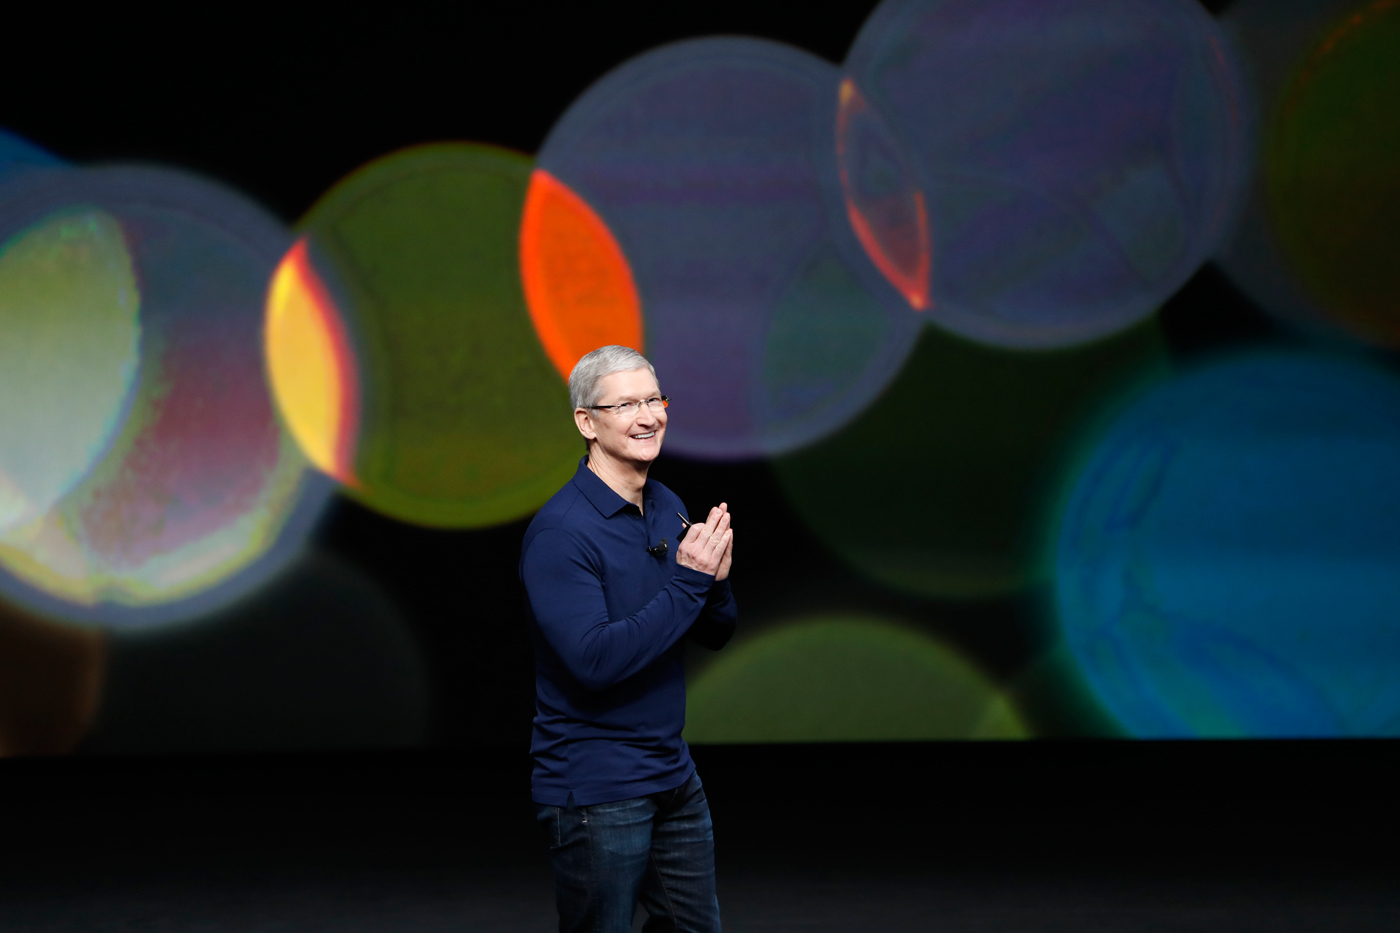 Apple CEO Tim Cook at the launch of the new iPhone in San Francsico, Wednesday.